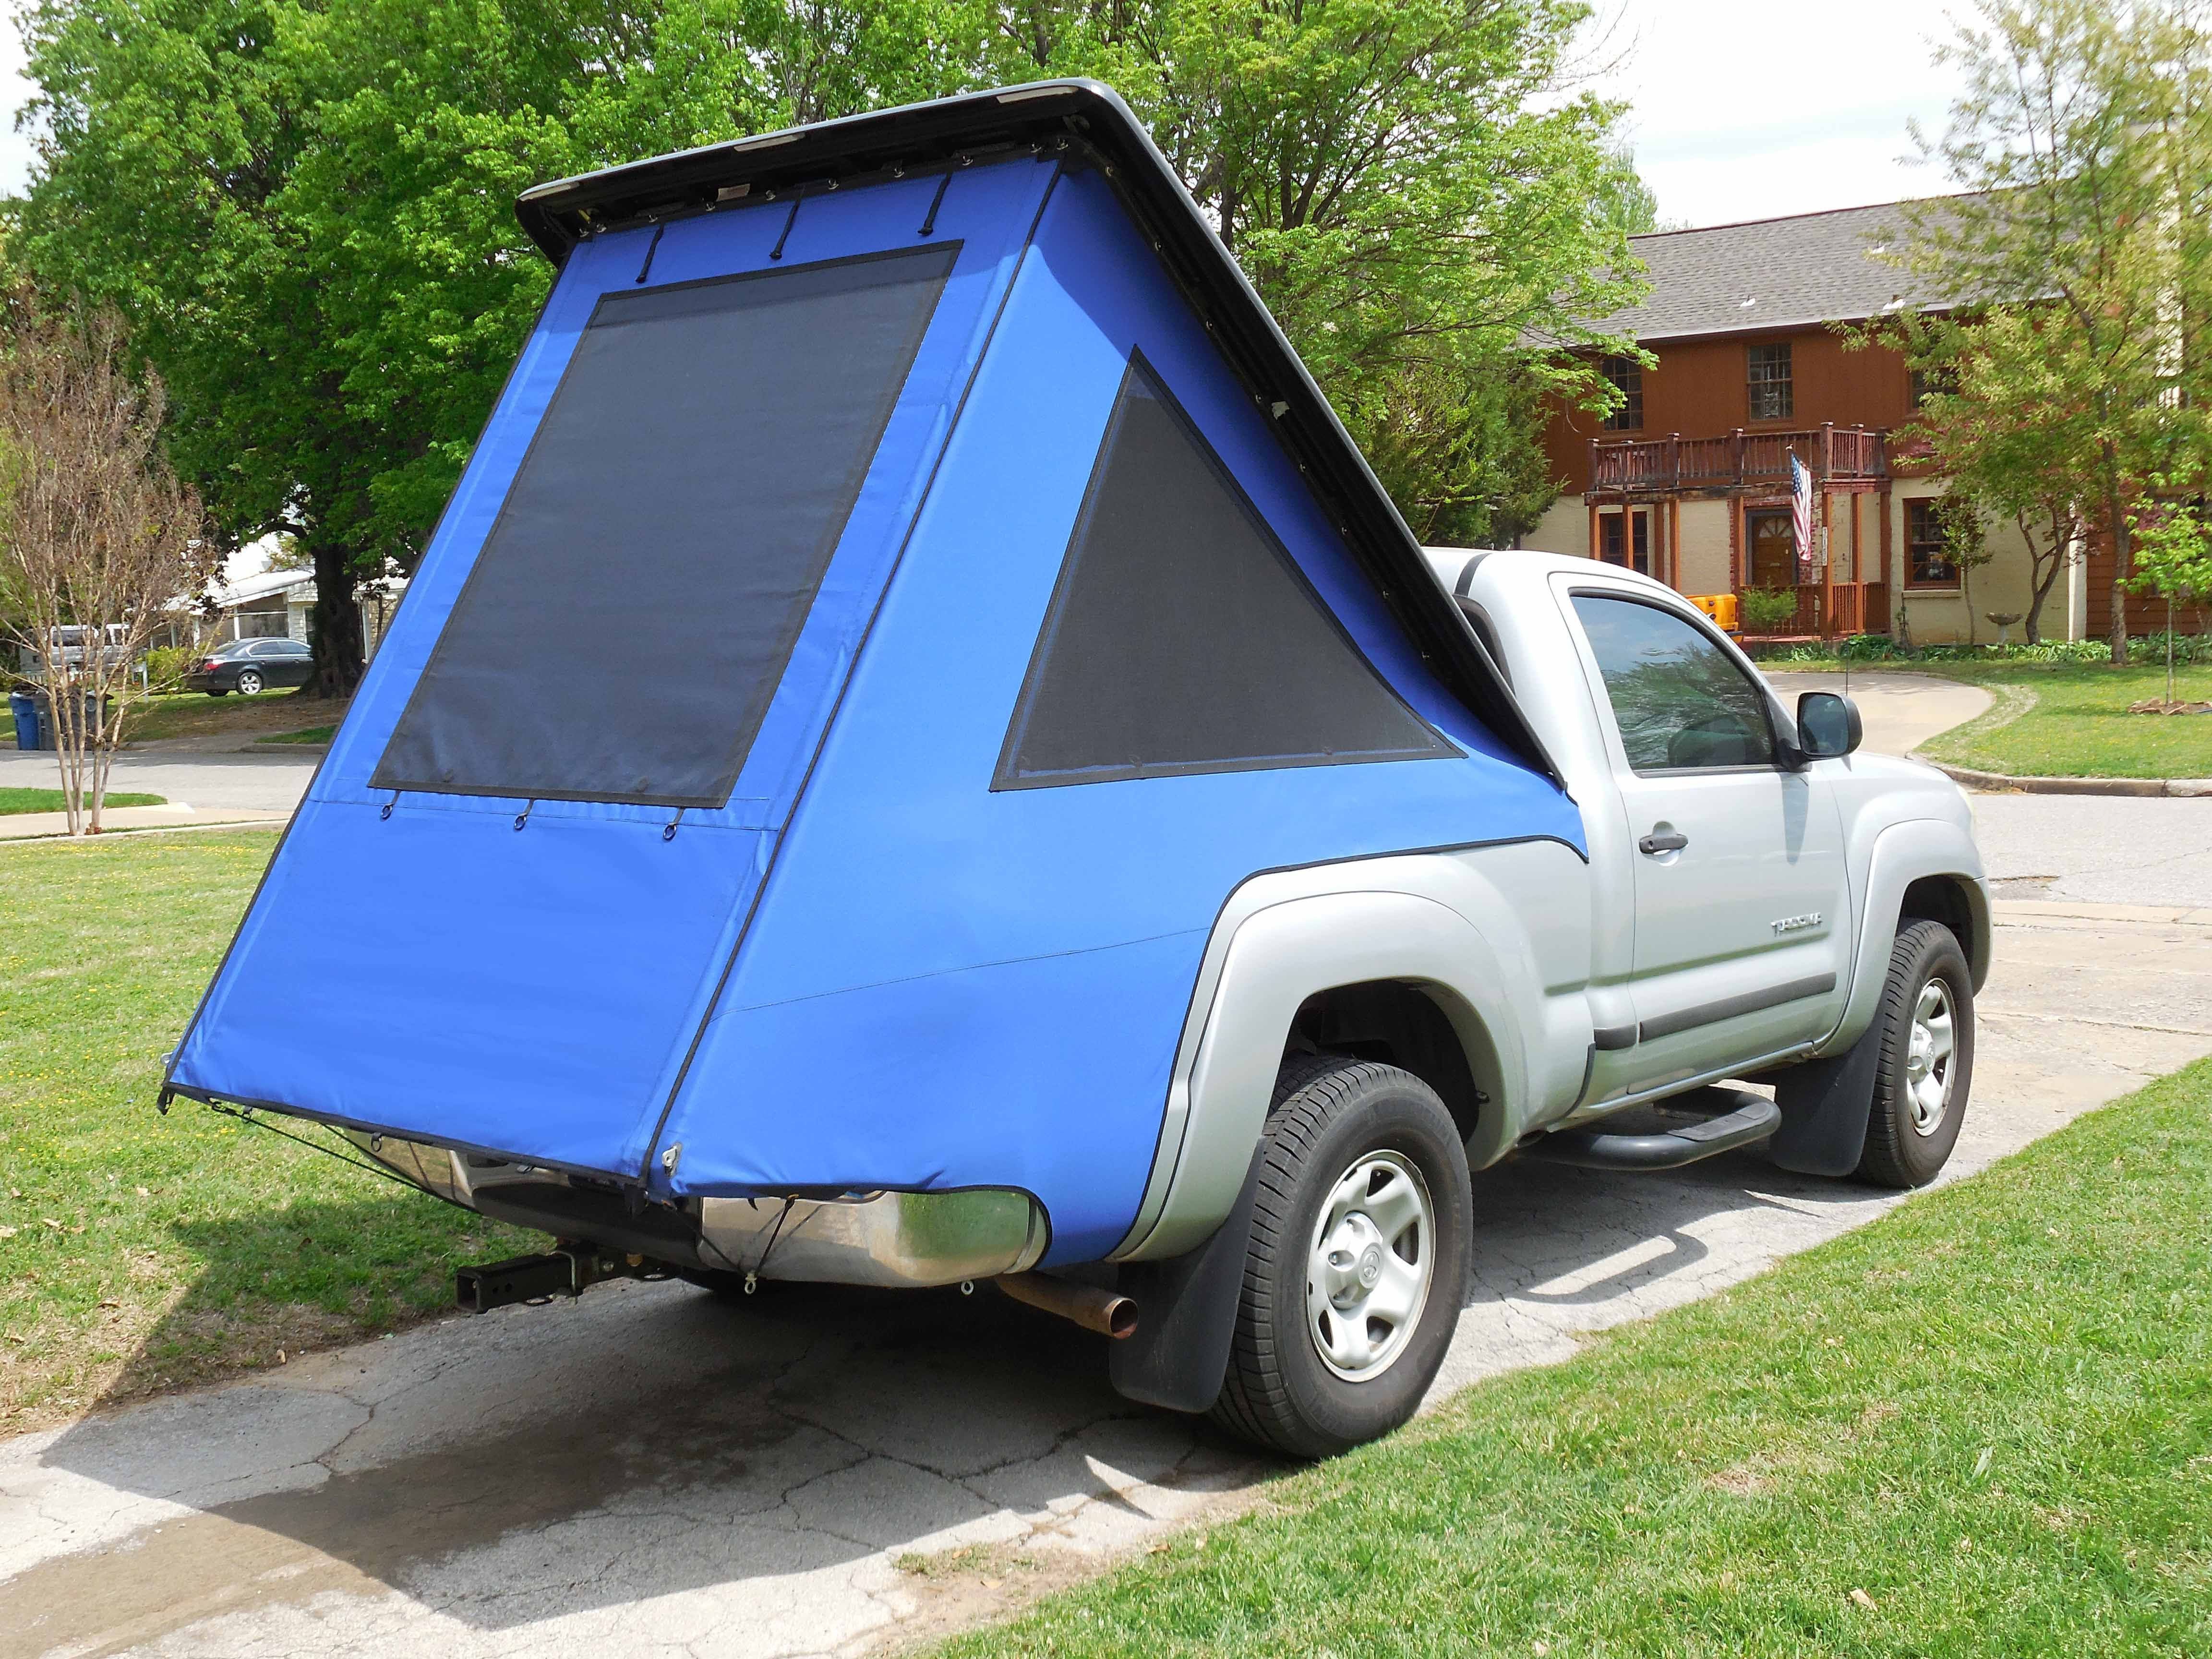 2006 Prerunner, UnderCover tonneau cover, WeatherMax 80